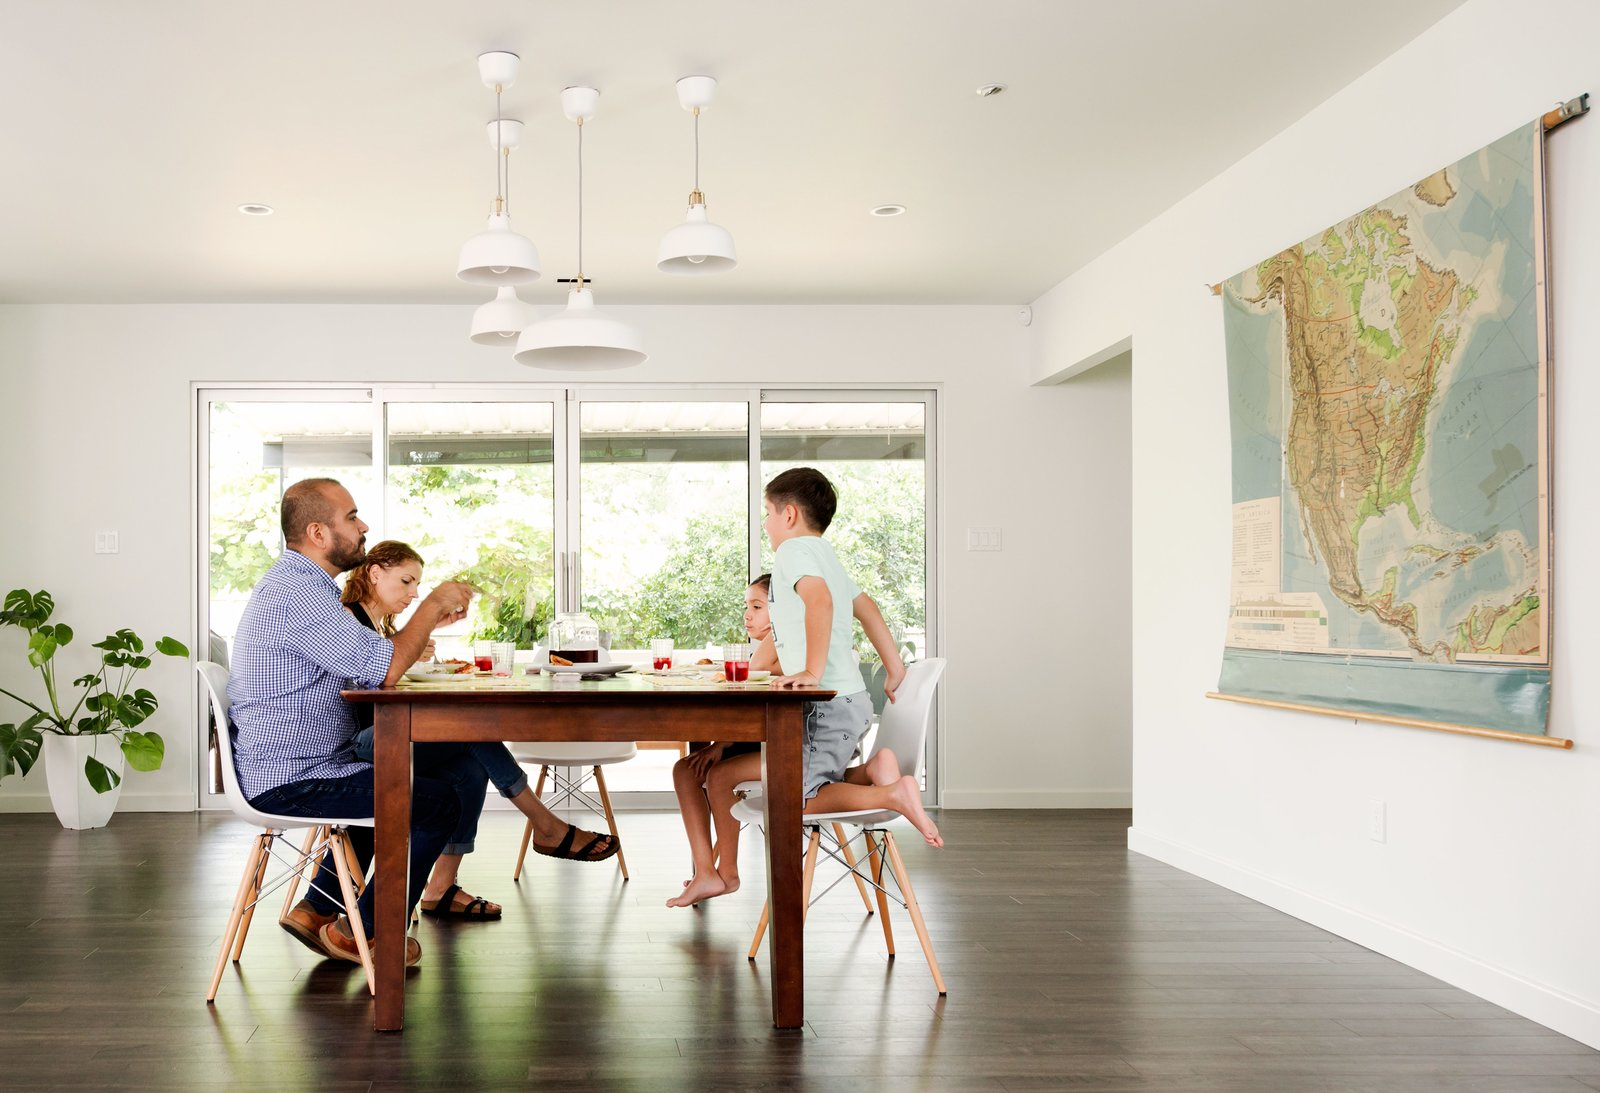 In the dining room, the family gathers beneath a cluster of IKEA Ranarp pendants. Tagged: Dining Room, Dark Hardwood Floor, Pendant Lighting, Table, and Chair. Midcentury Homes by Dwell